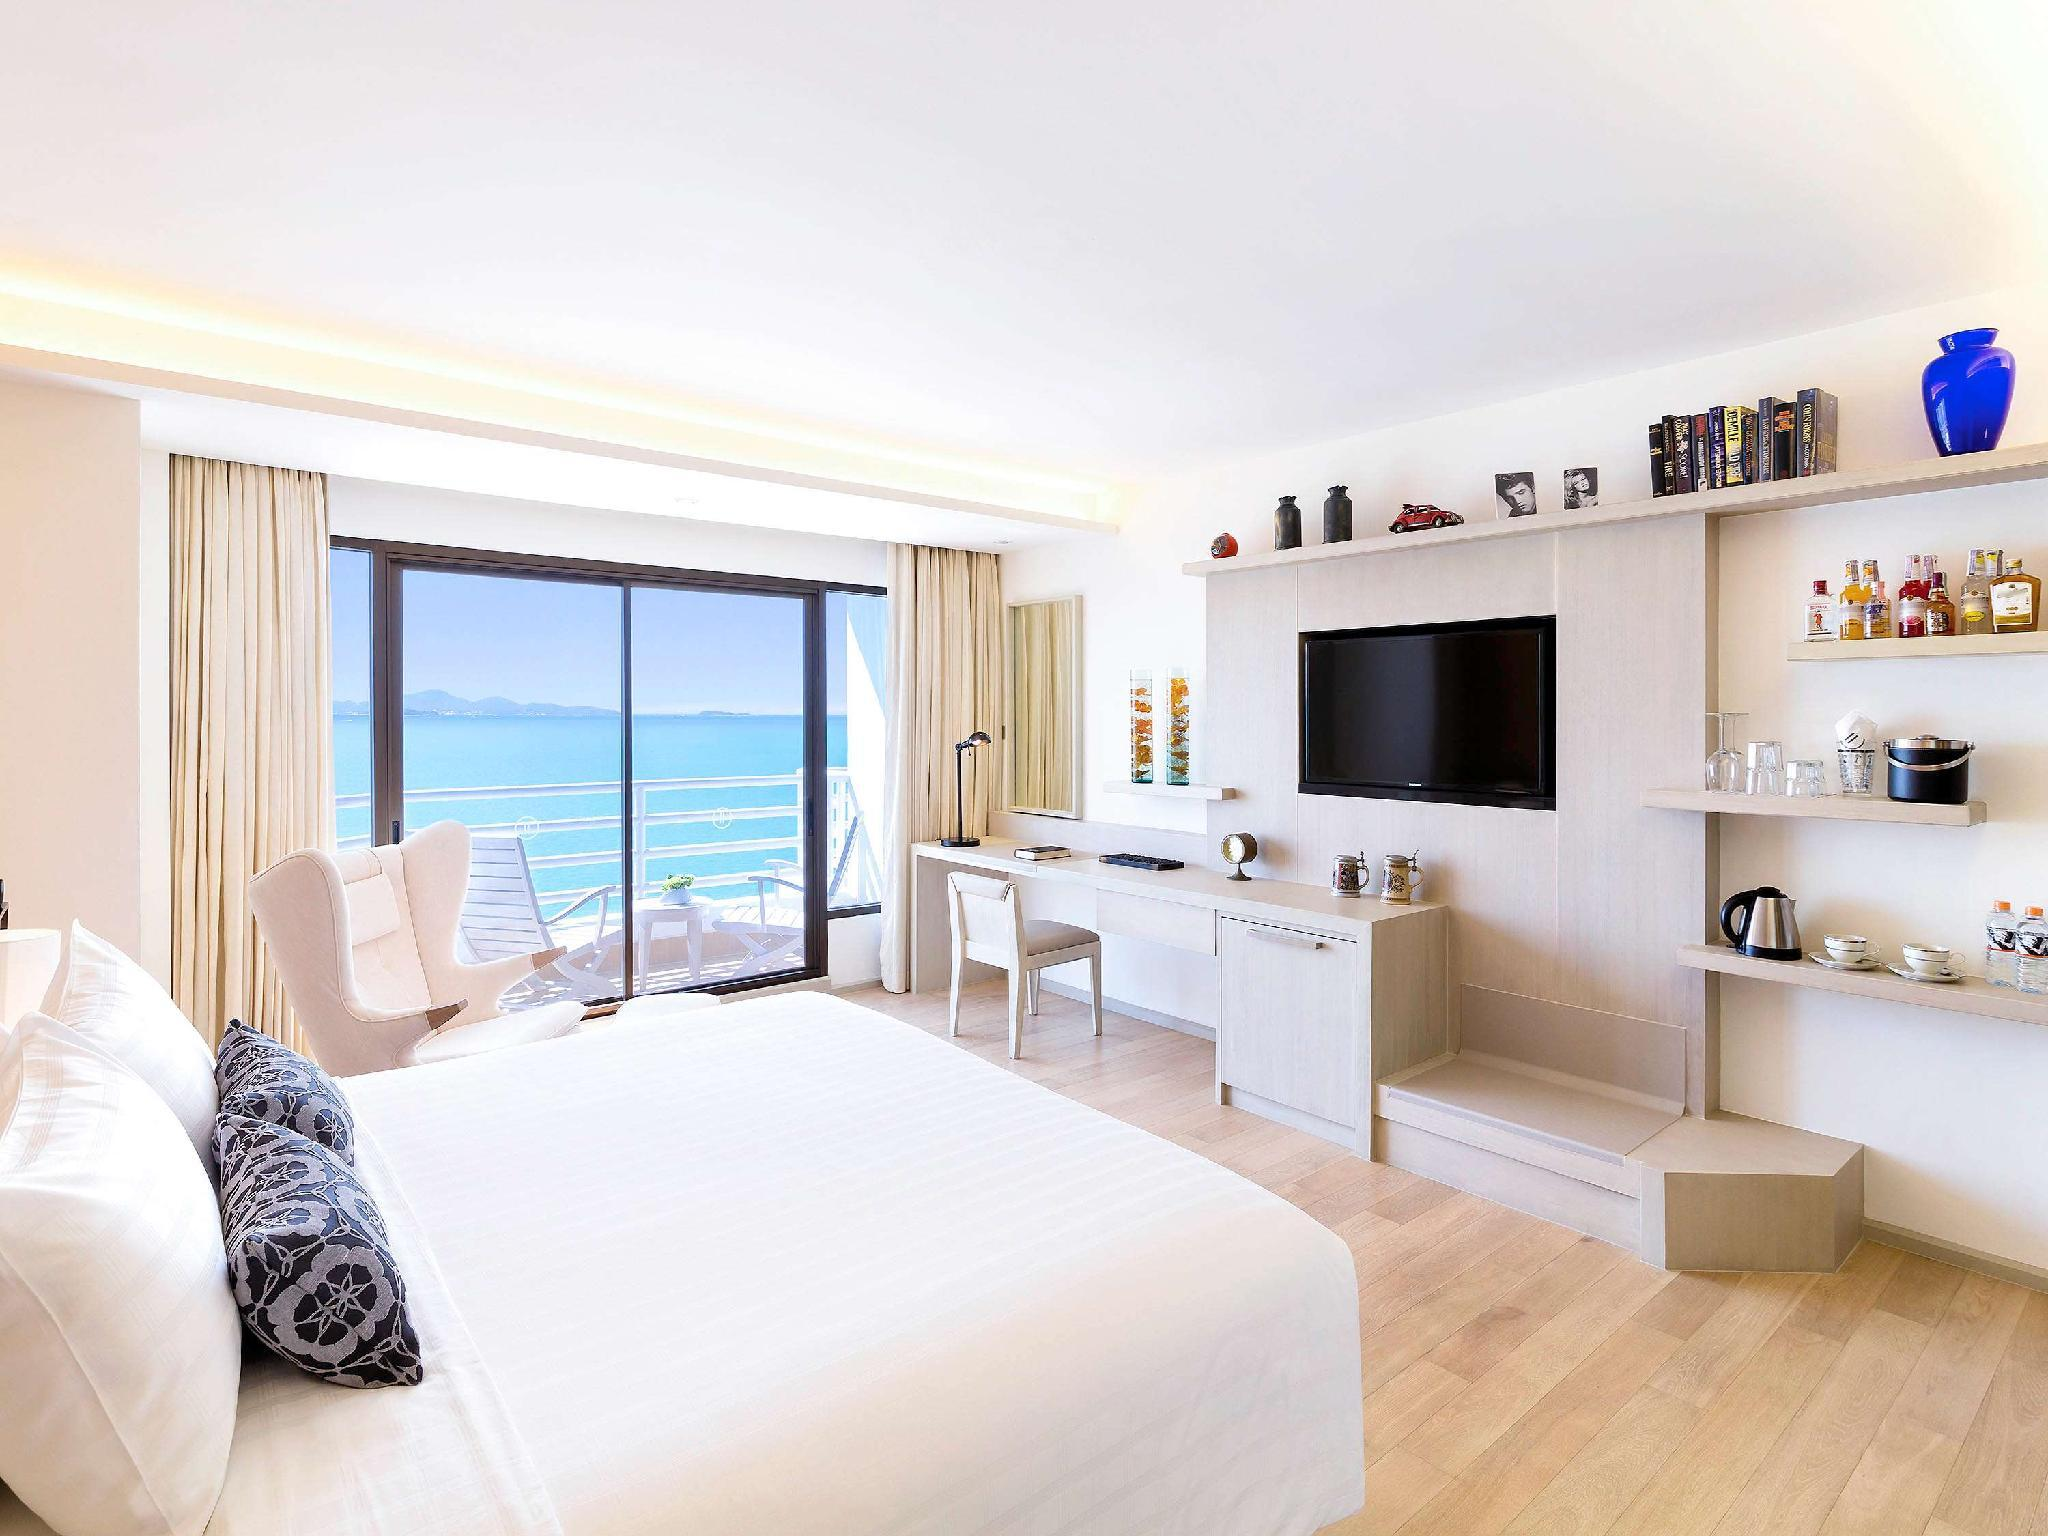 Executive Room, Lounge Access, 1 King Size Bed, Full Sea View